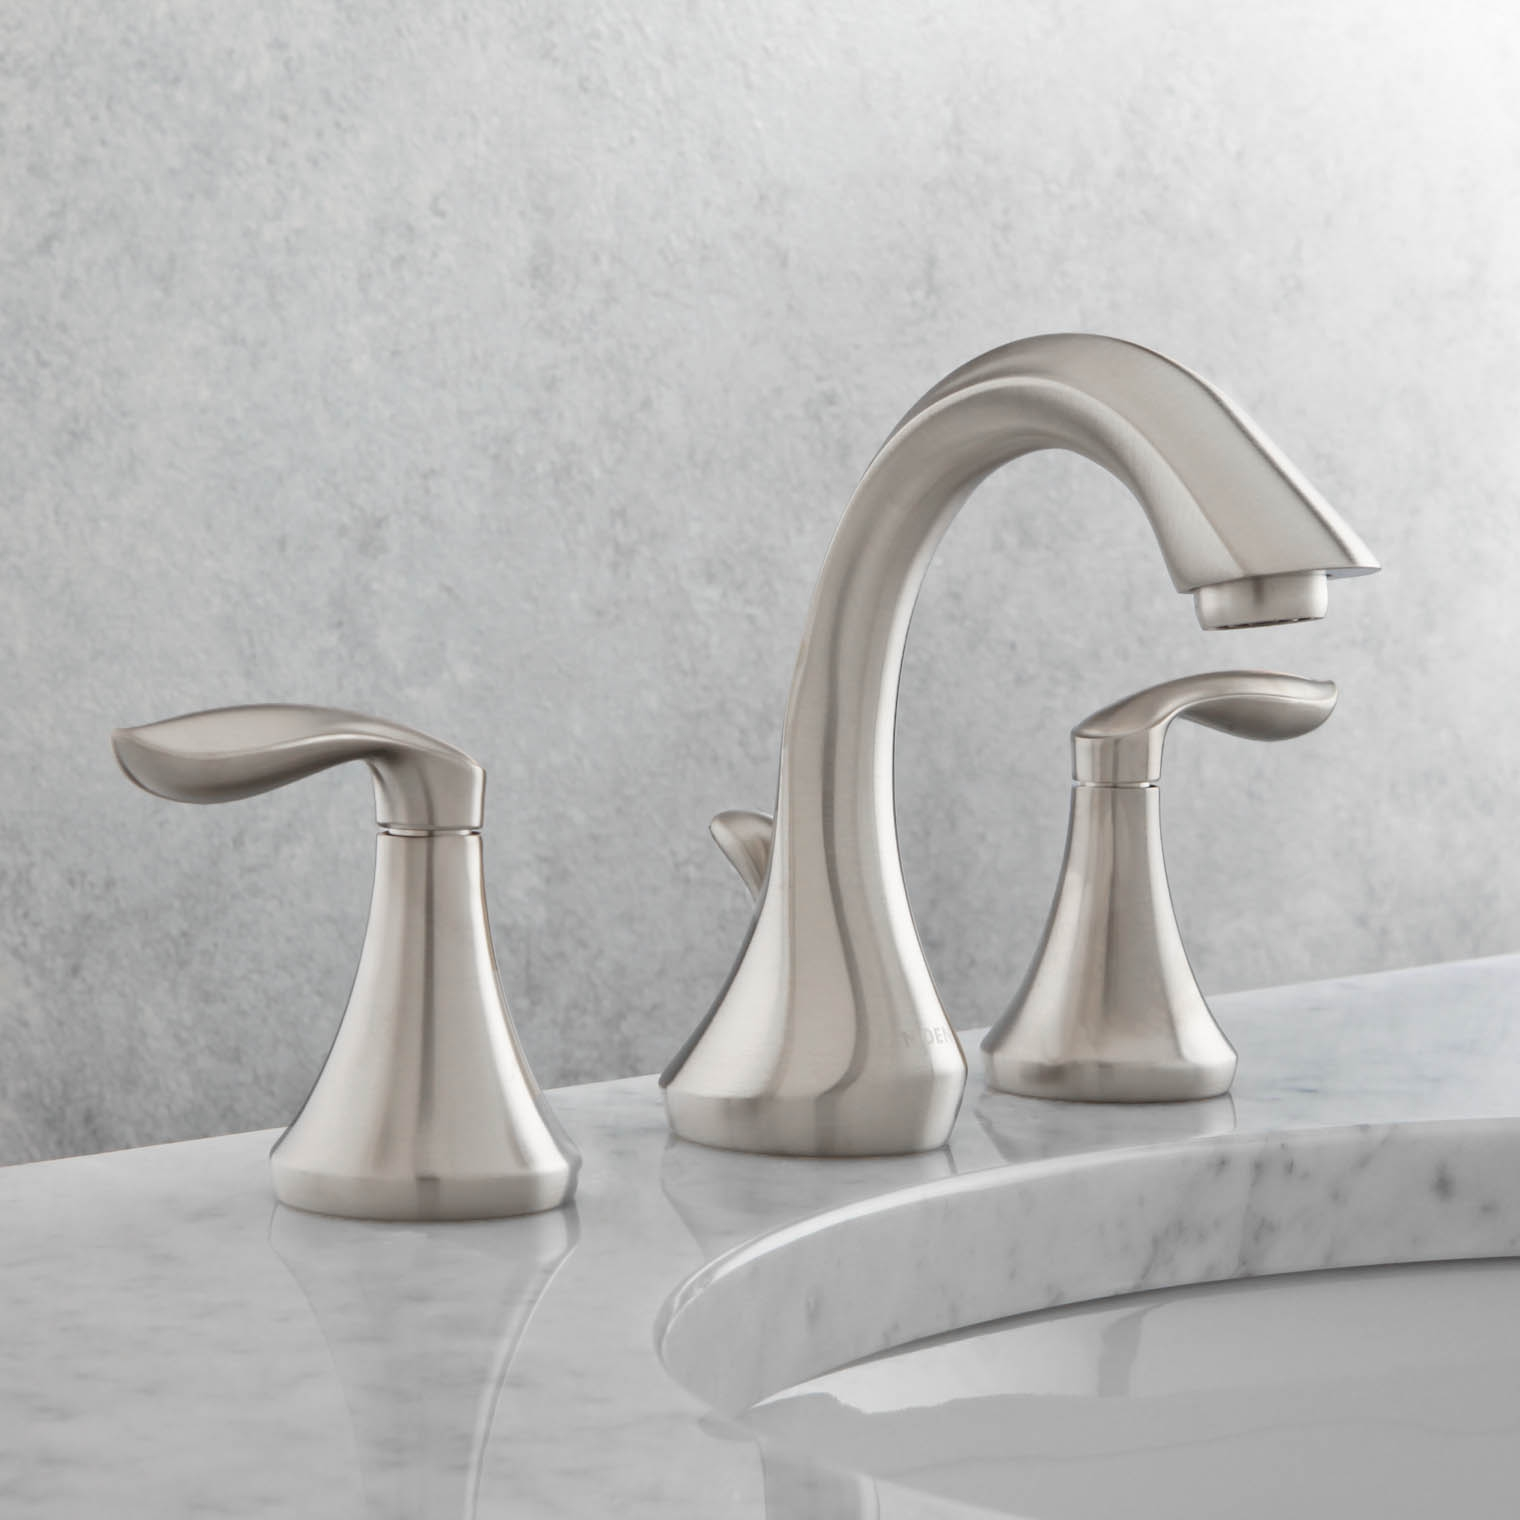 moen gold bathroom faucets bathroom faucet and bench ideas inside proportions 1520 x 1520